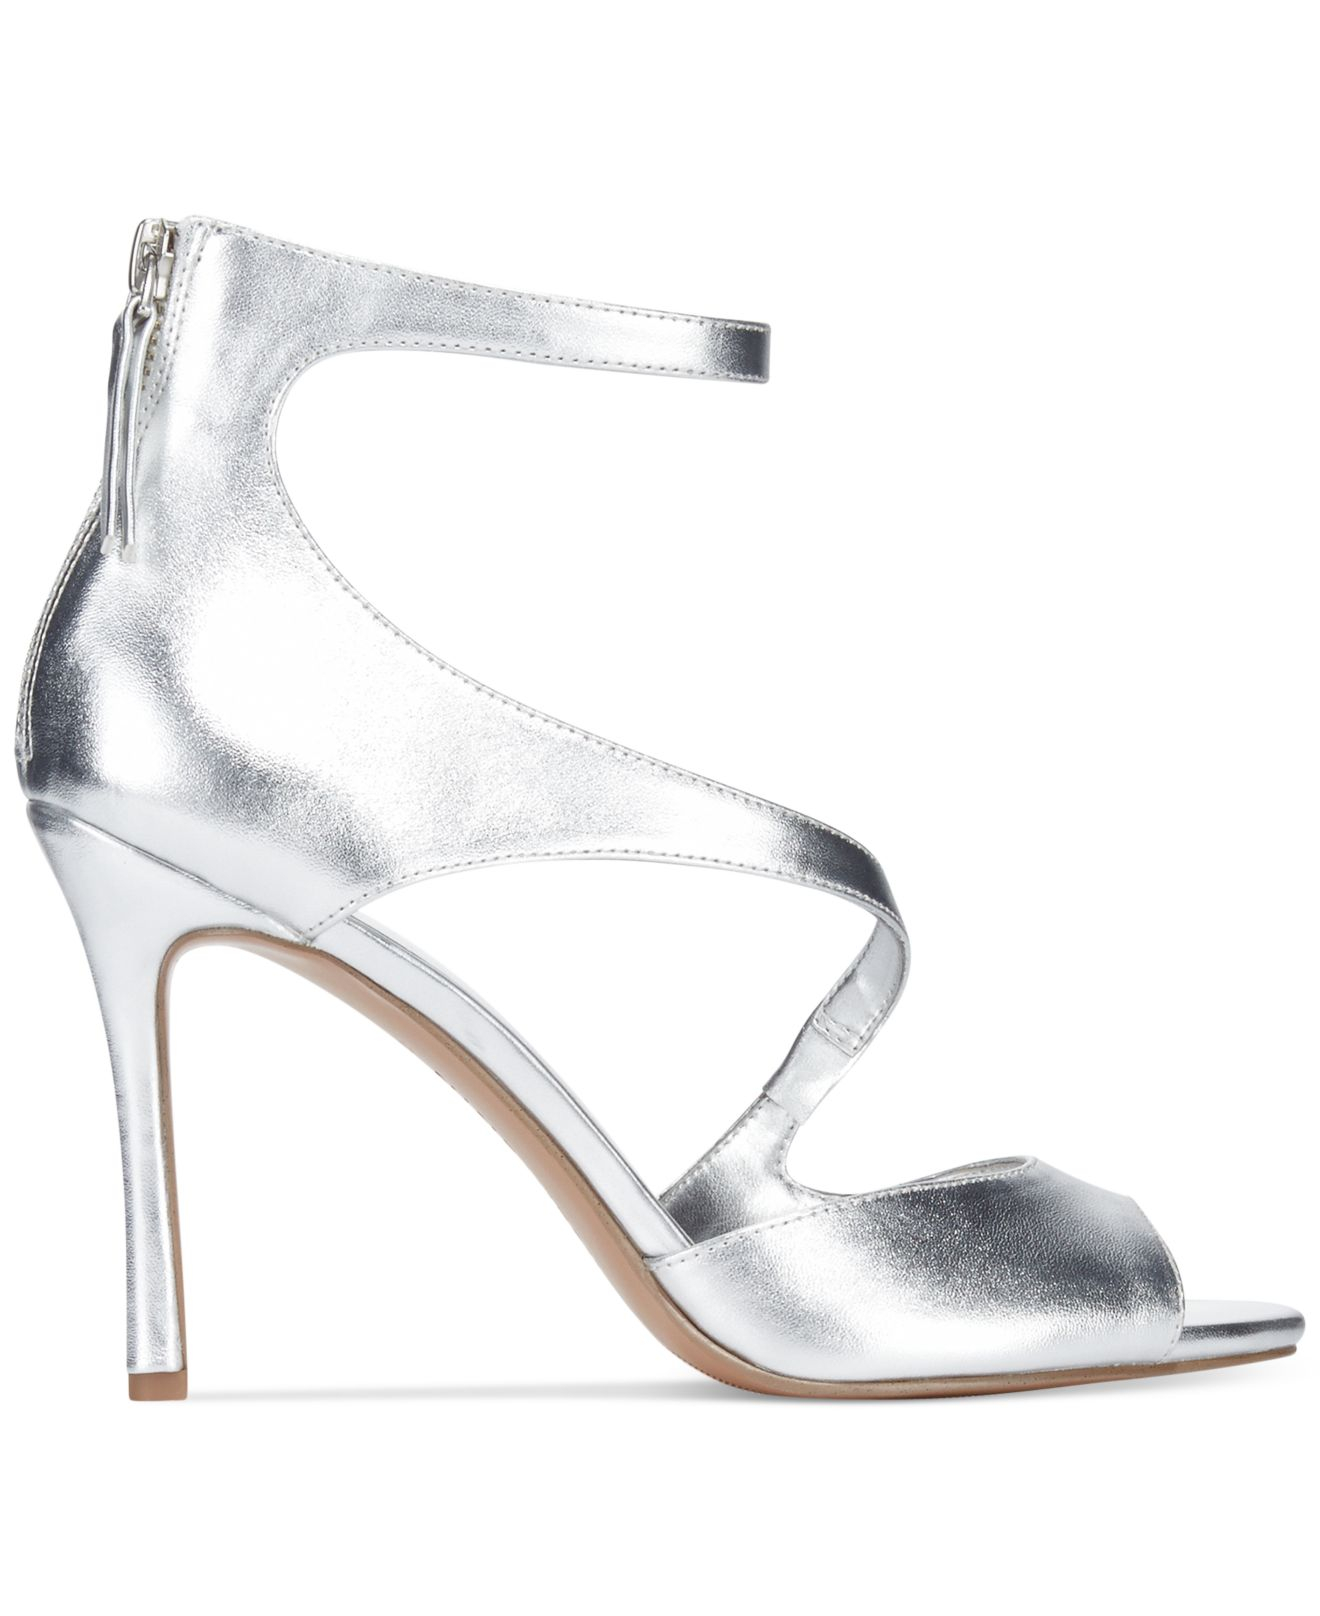 Evening High Sandals Festivitie Heel West Metallic Nine eBdorxC